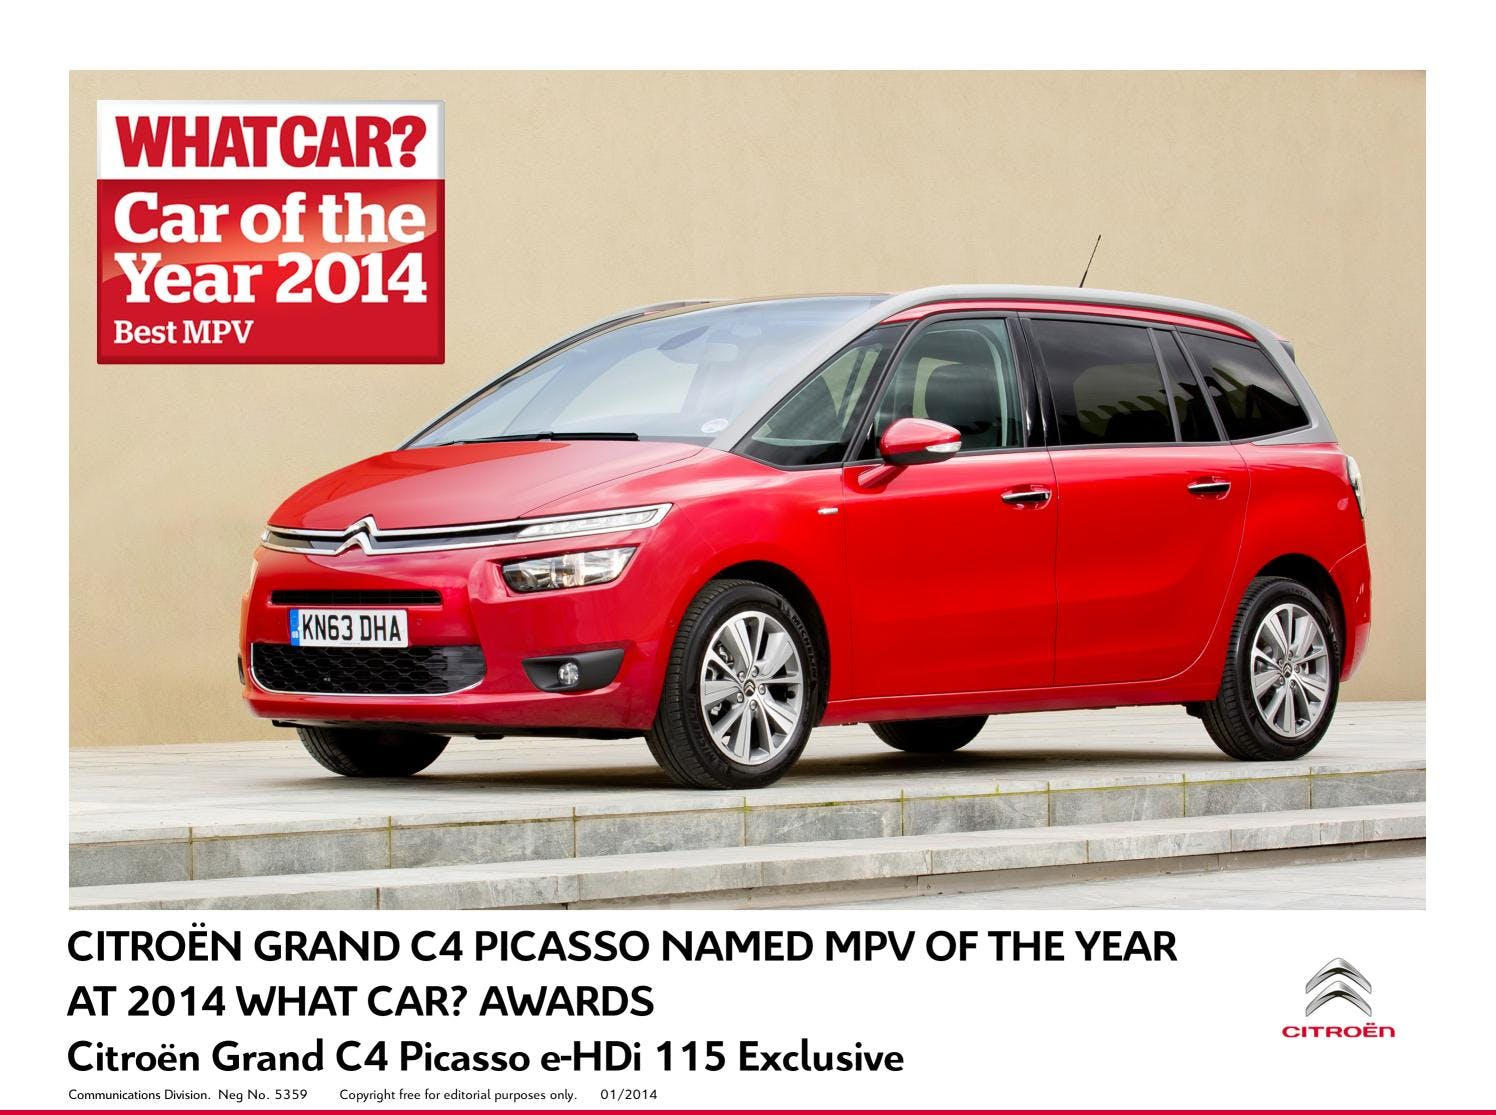 Citroën Grand C4 Picasso Named 'MPV of the Year' By What Car? Magazine